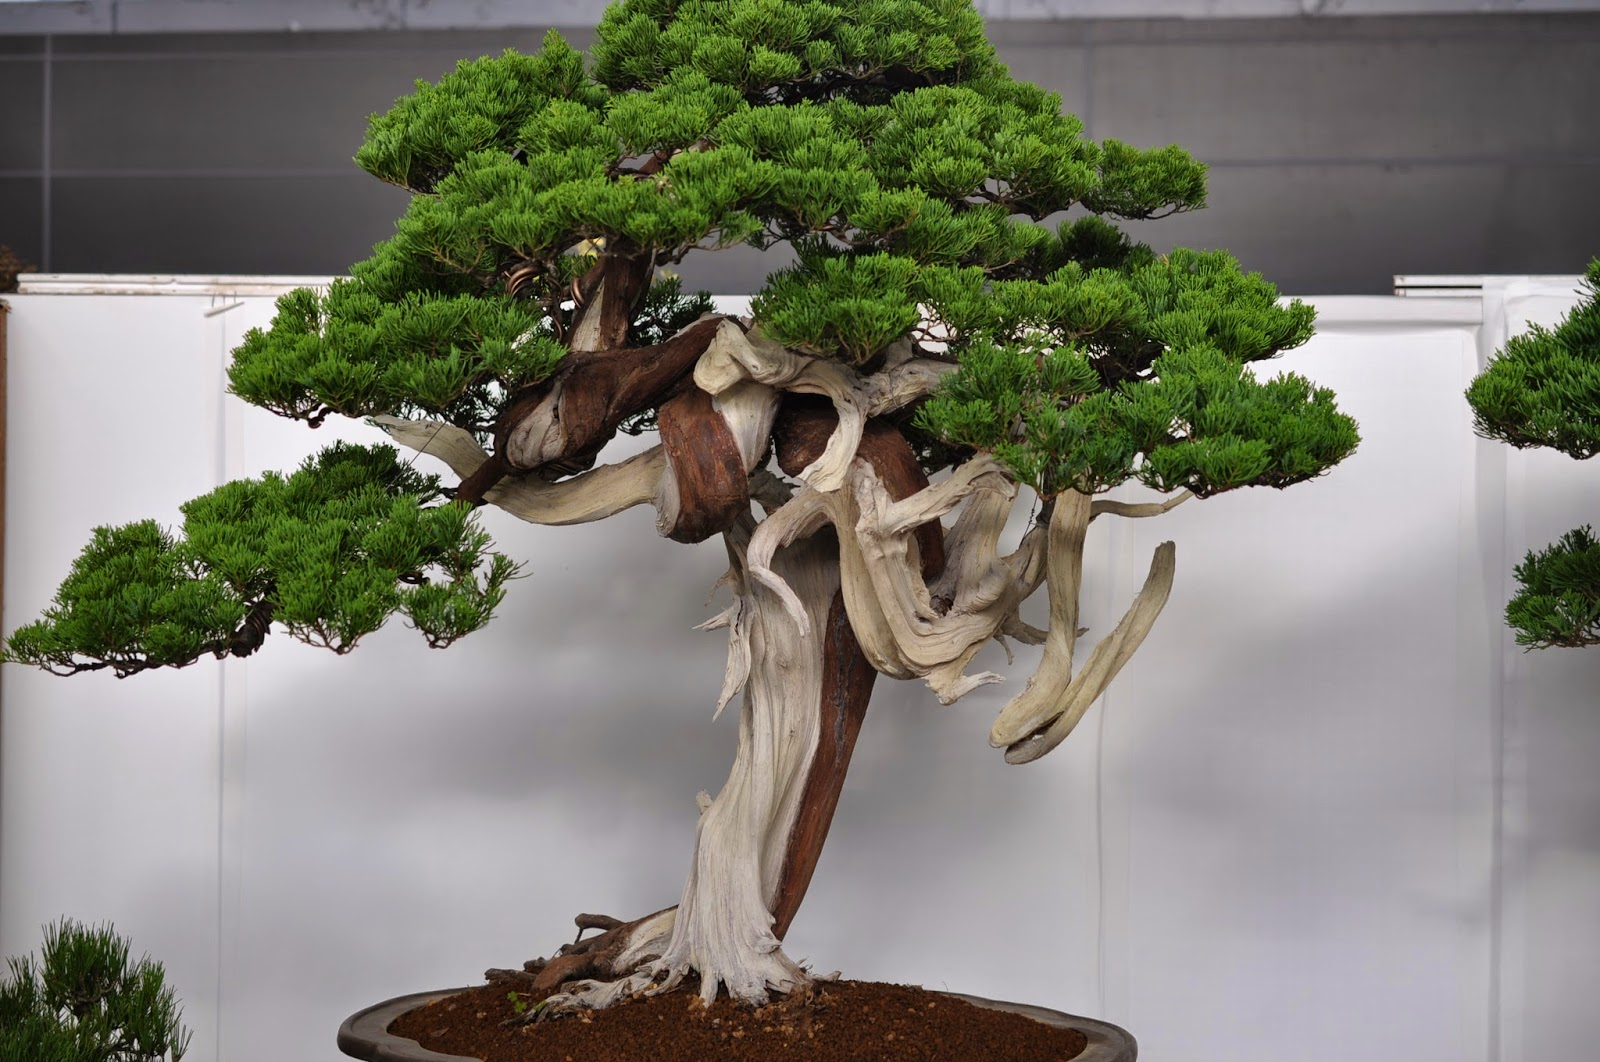 All In One Bonsai And Ceramics Taiwan Bonsai Exhibition